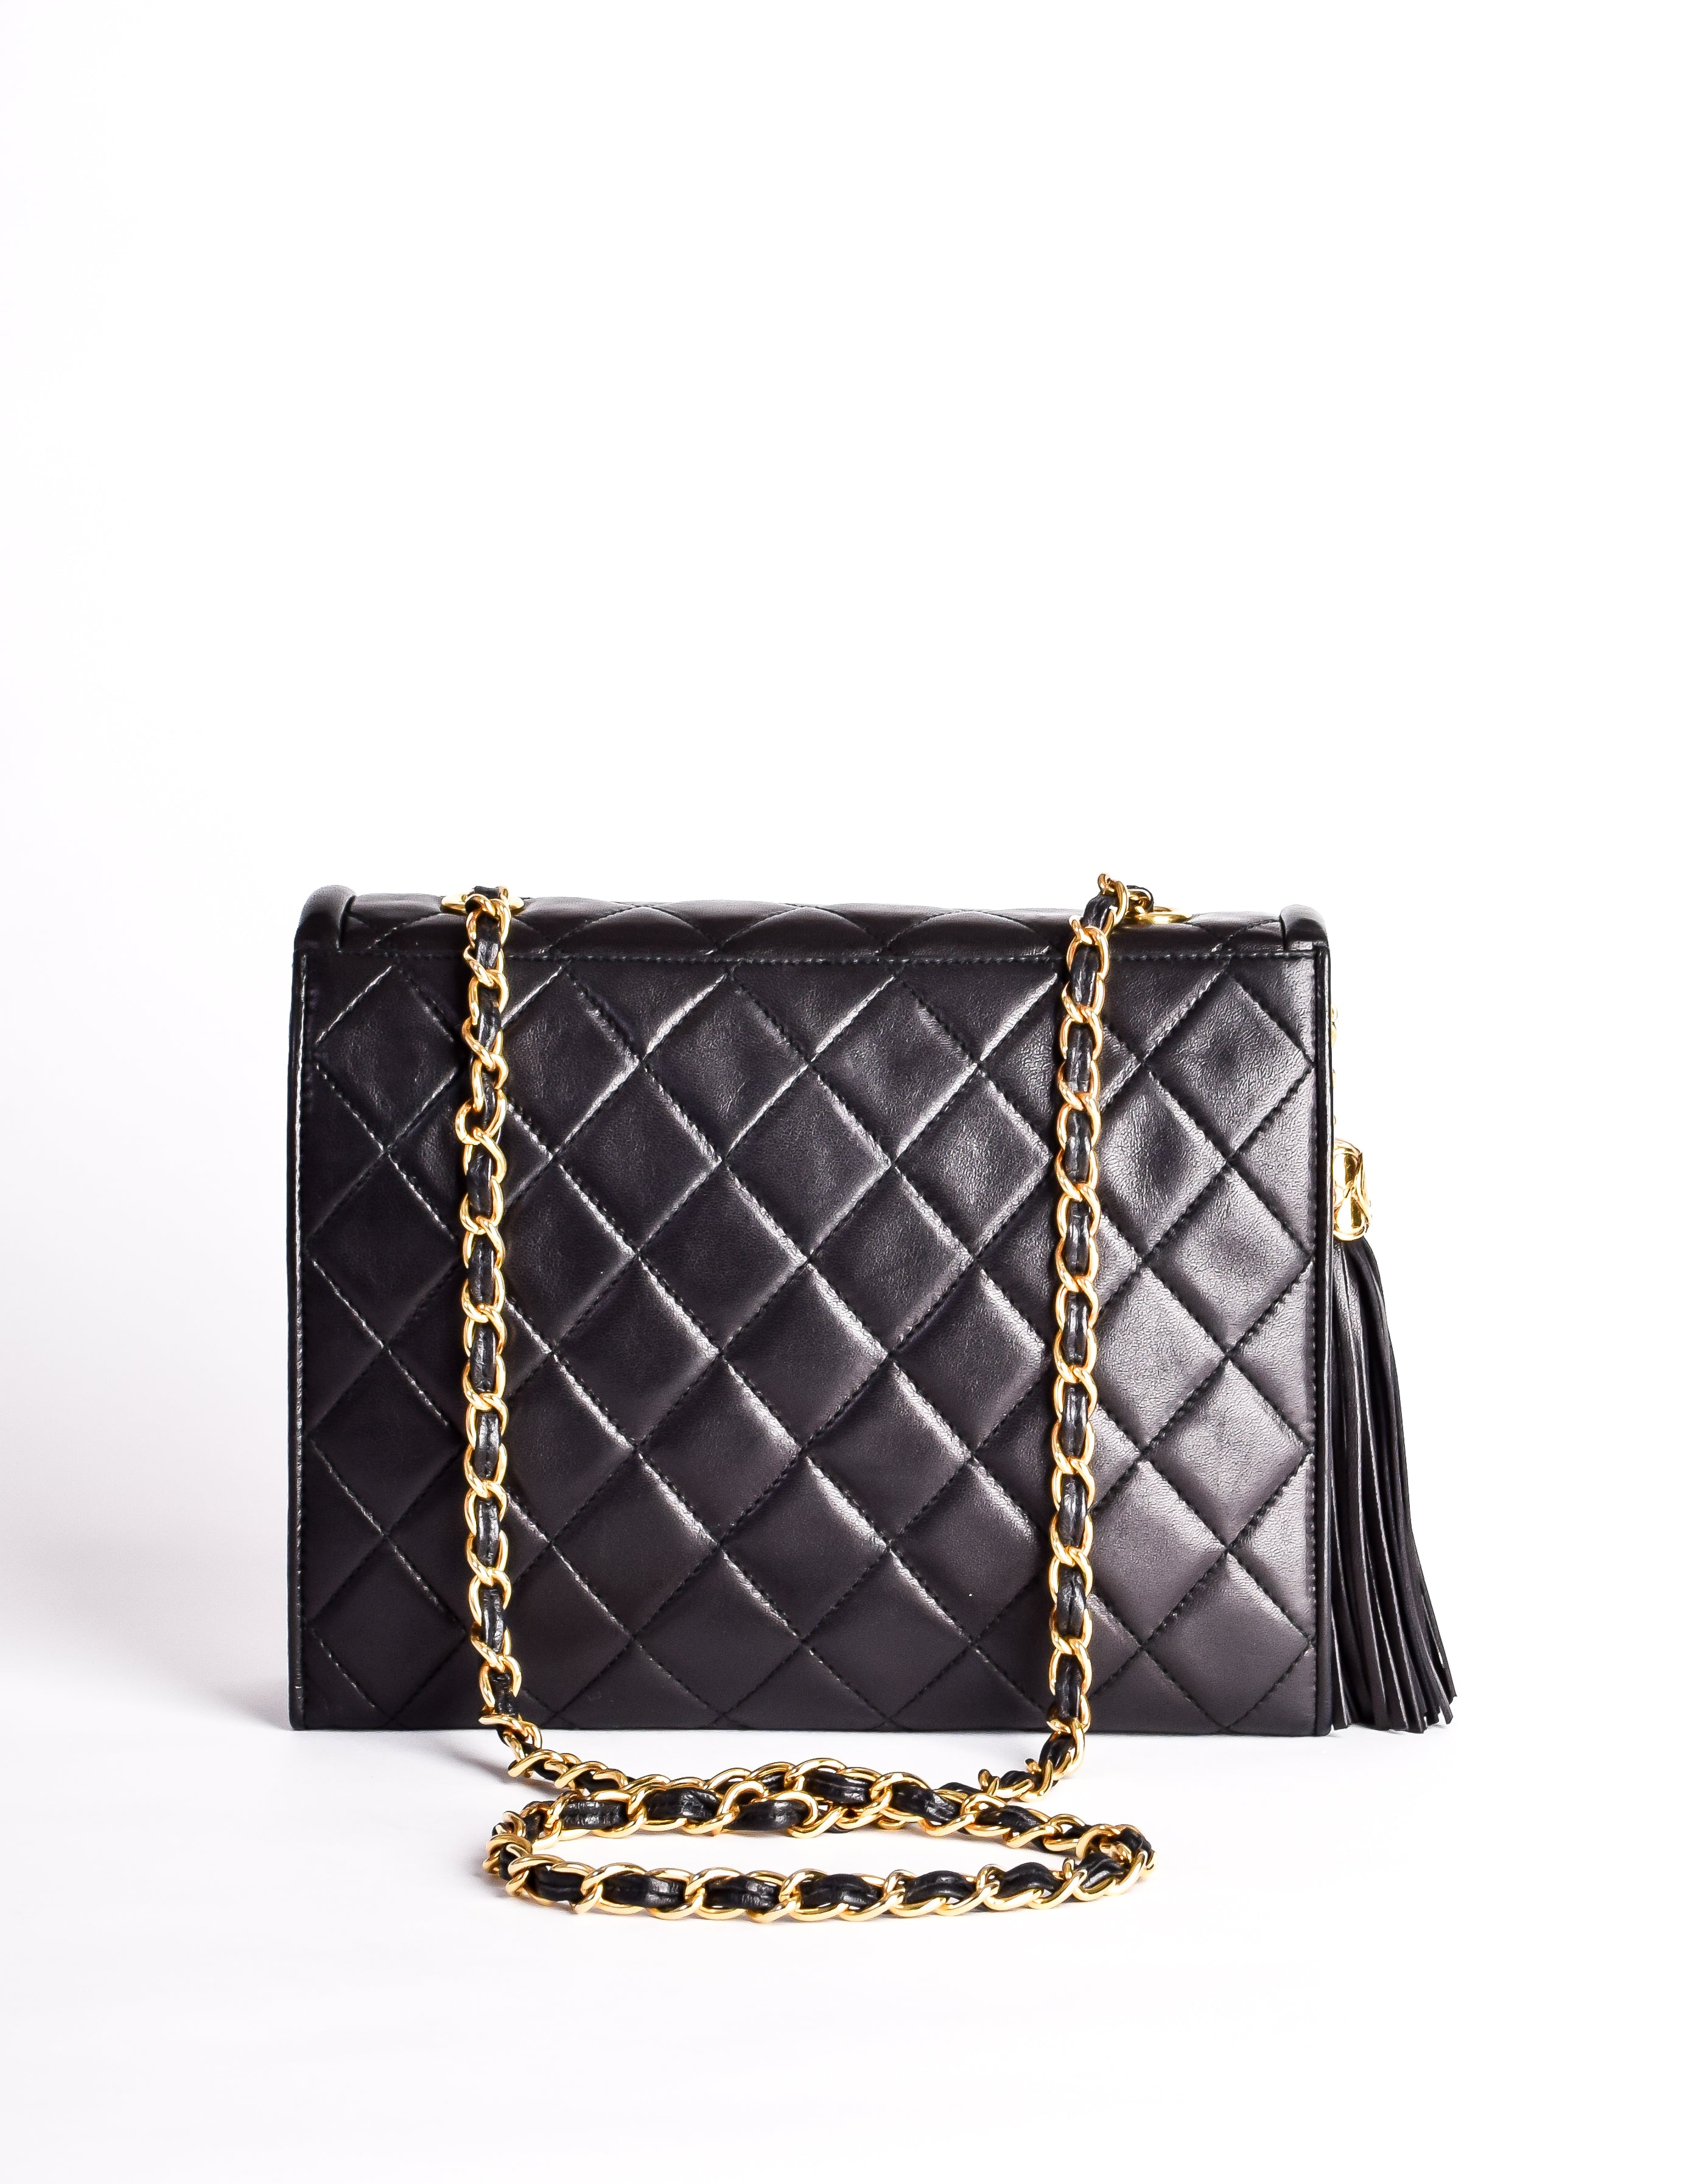 ad7801dfc3af Chanel Vintage Black Quilted Lambskin Crossover Double Flap Tassel ...